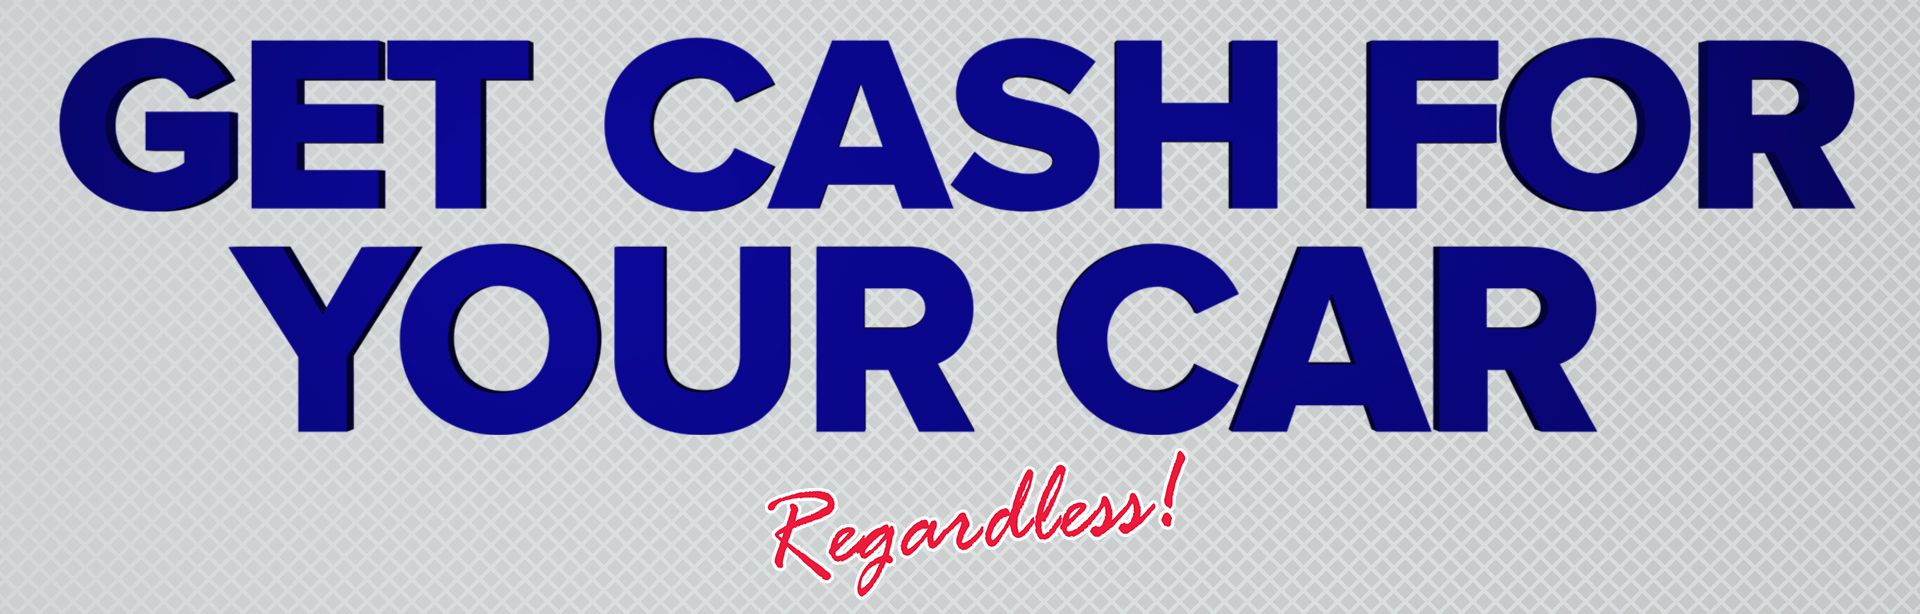 Get Cash for Your Car